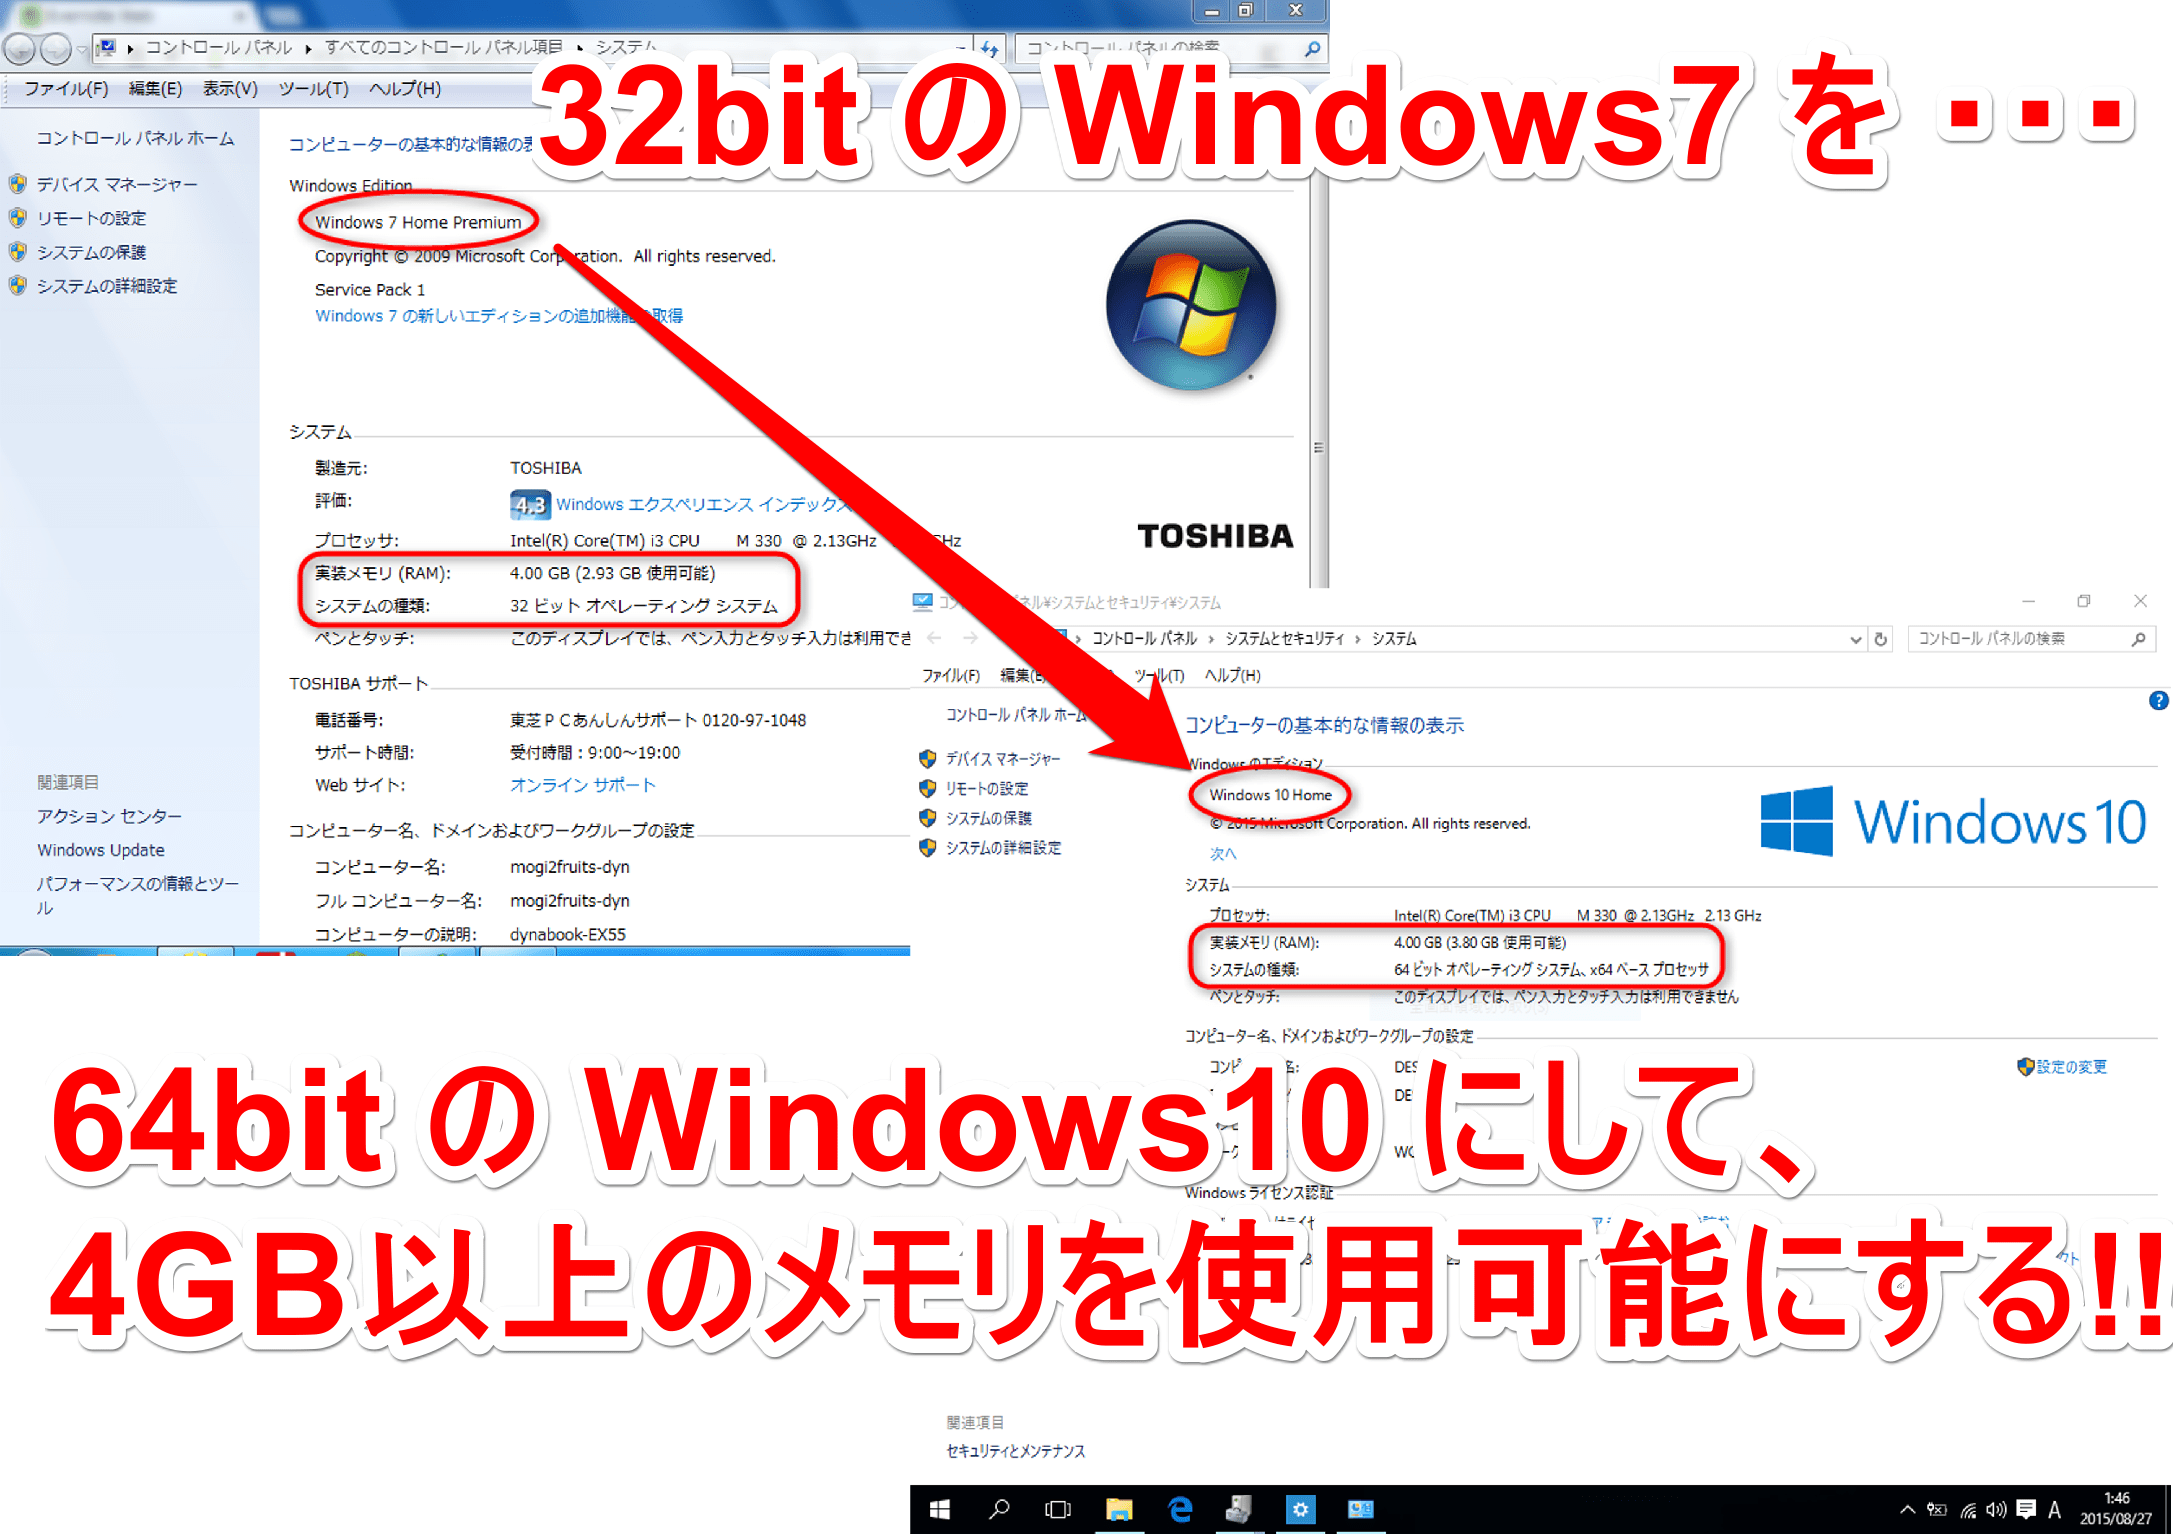 Windows7-32bitからWindows10-64bitにする